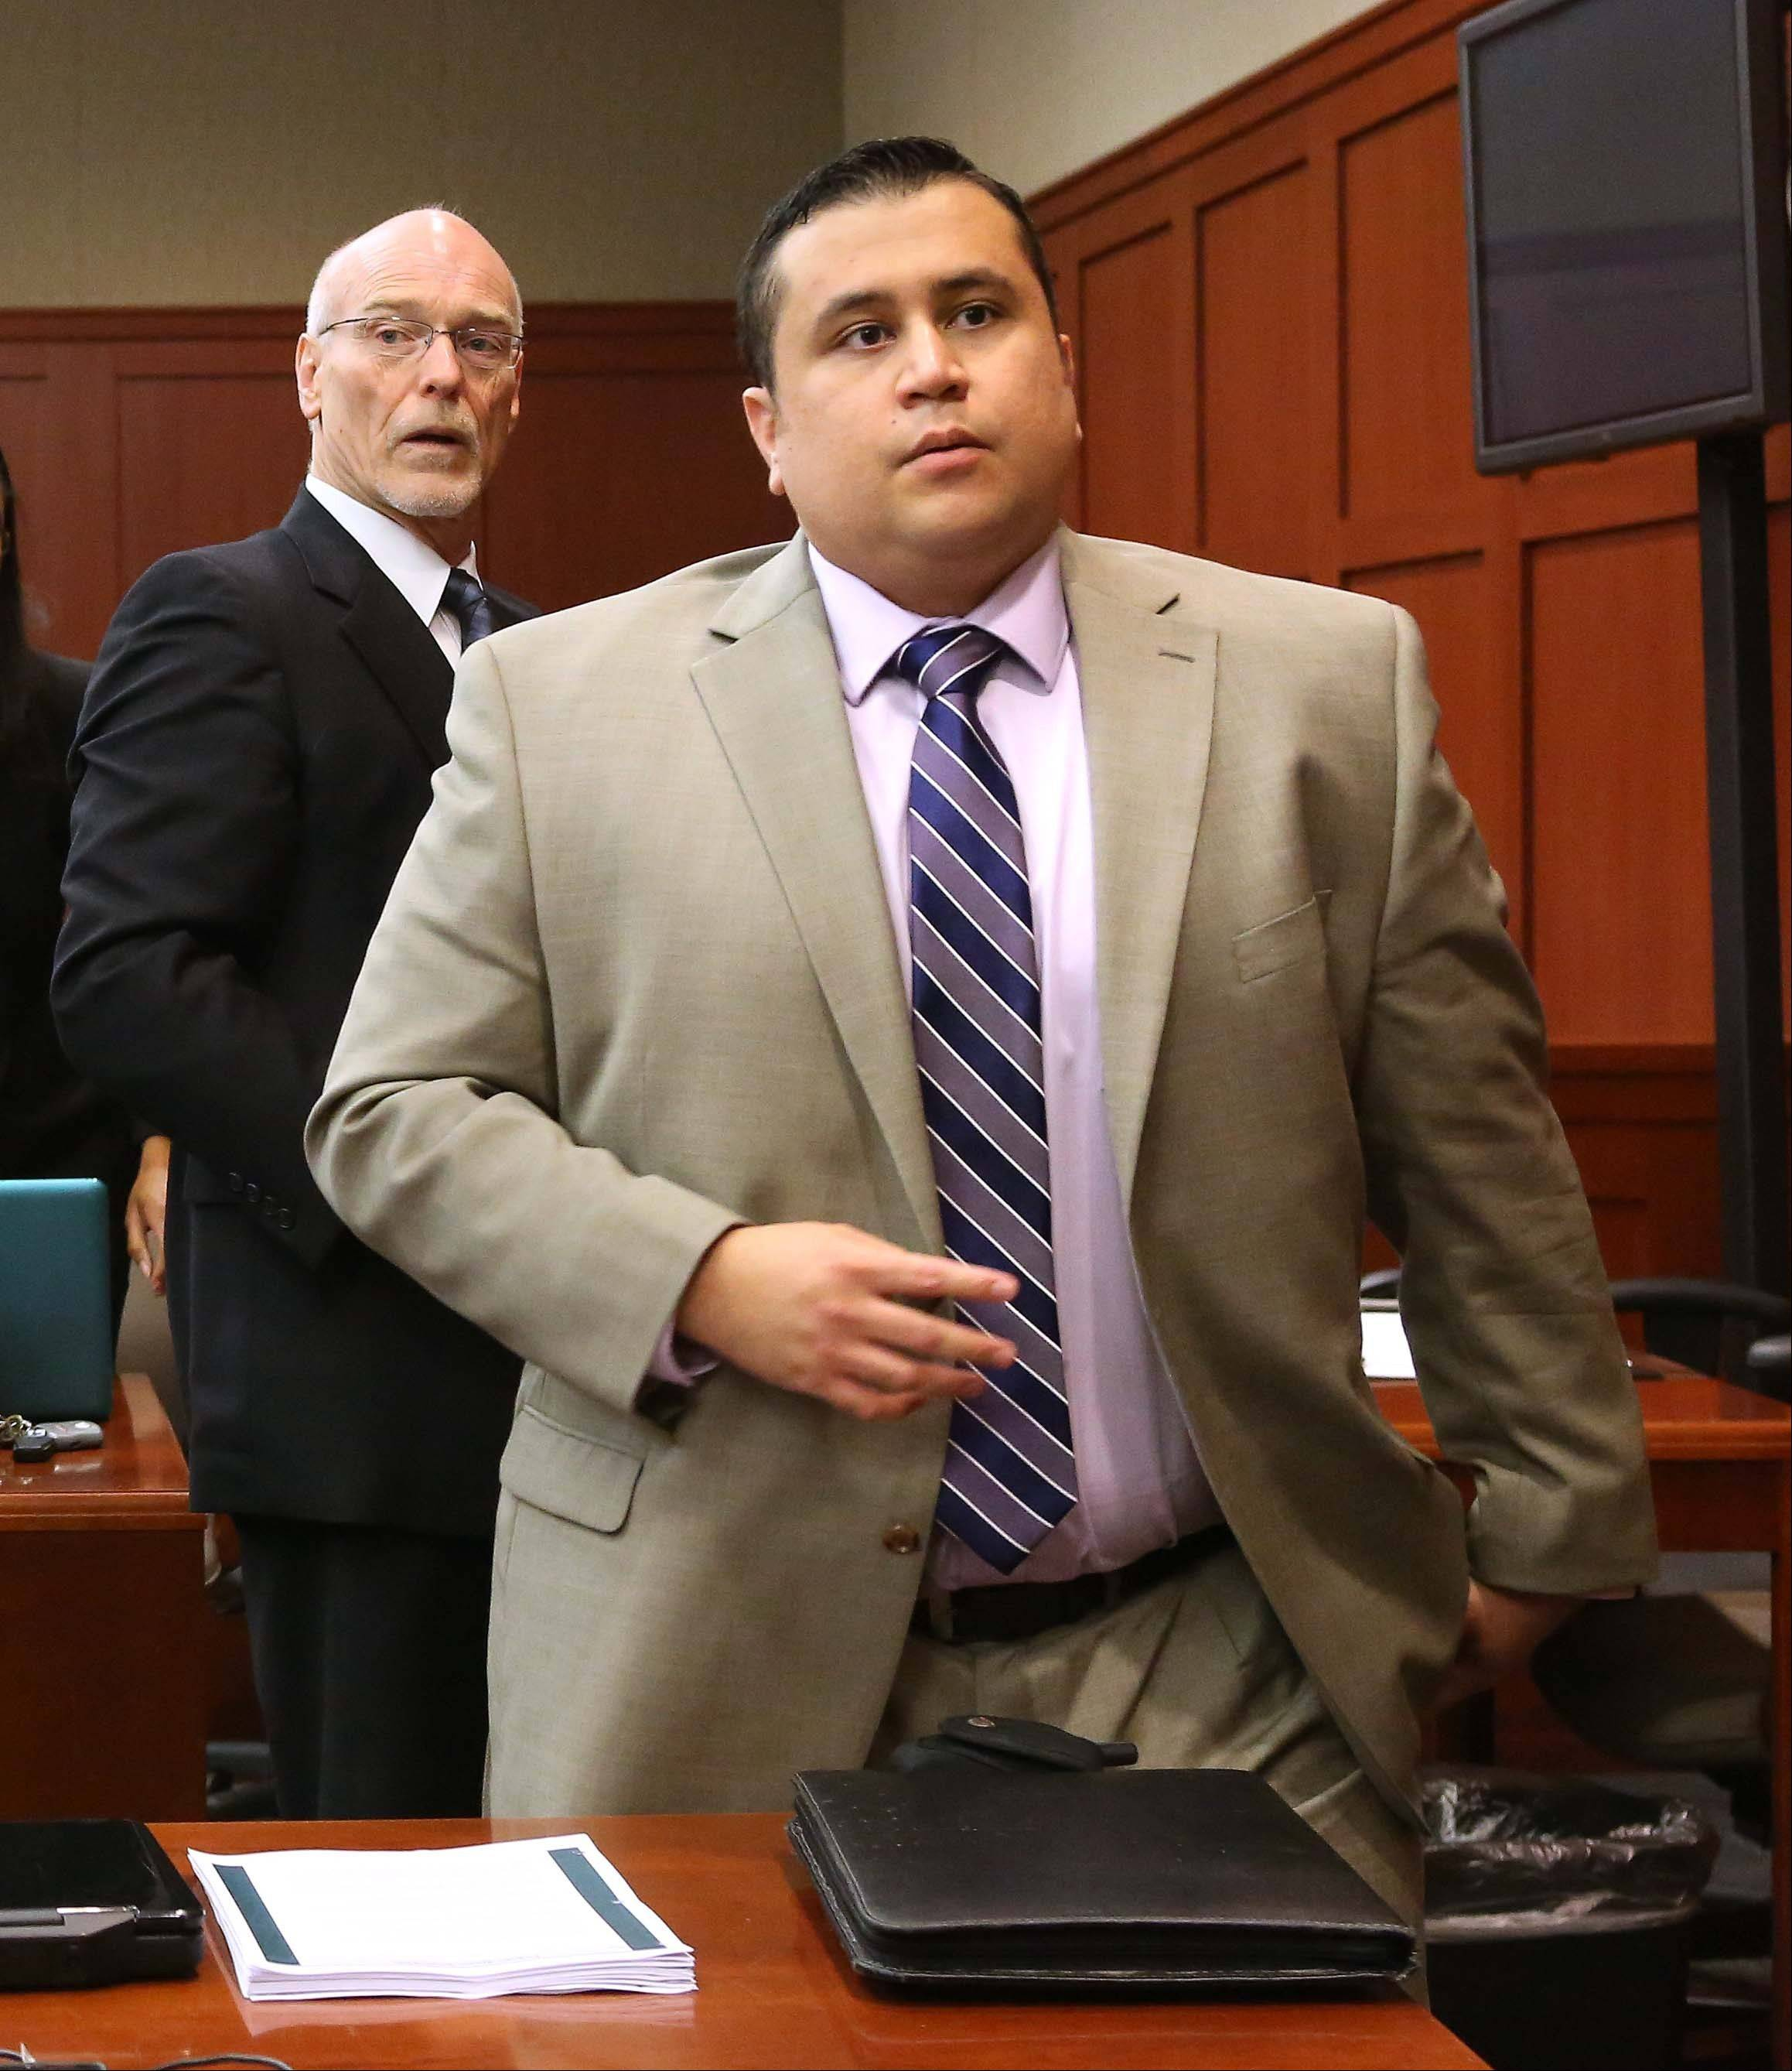 George Zimmerman, right, and attorney Don West, stand as the judge enters the courtroom in Seminole circuit court for a pretrial hearing in Sanford, Fla., Saturday. Jury selection begins Monday in the second-degree murder trial, which is expected to last about six weeks.